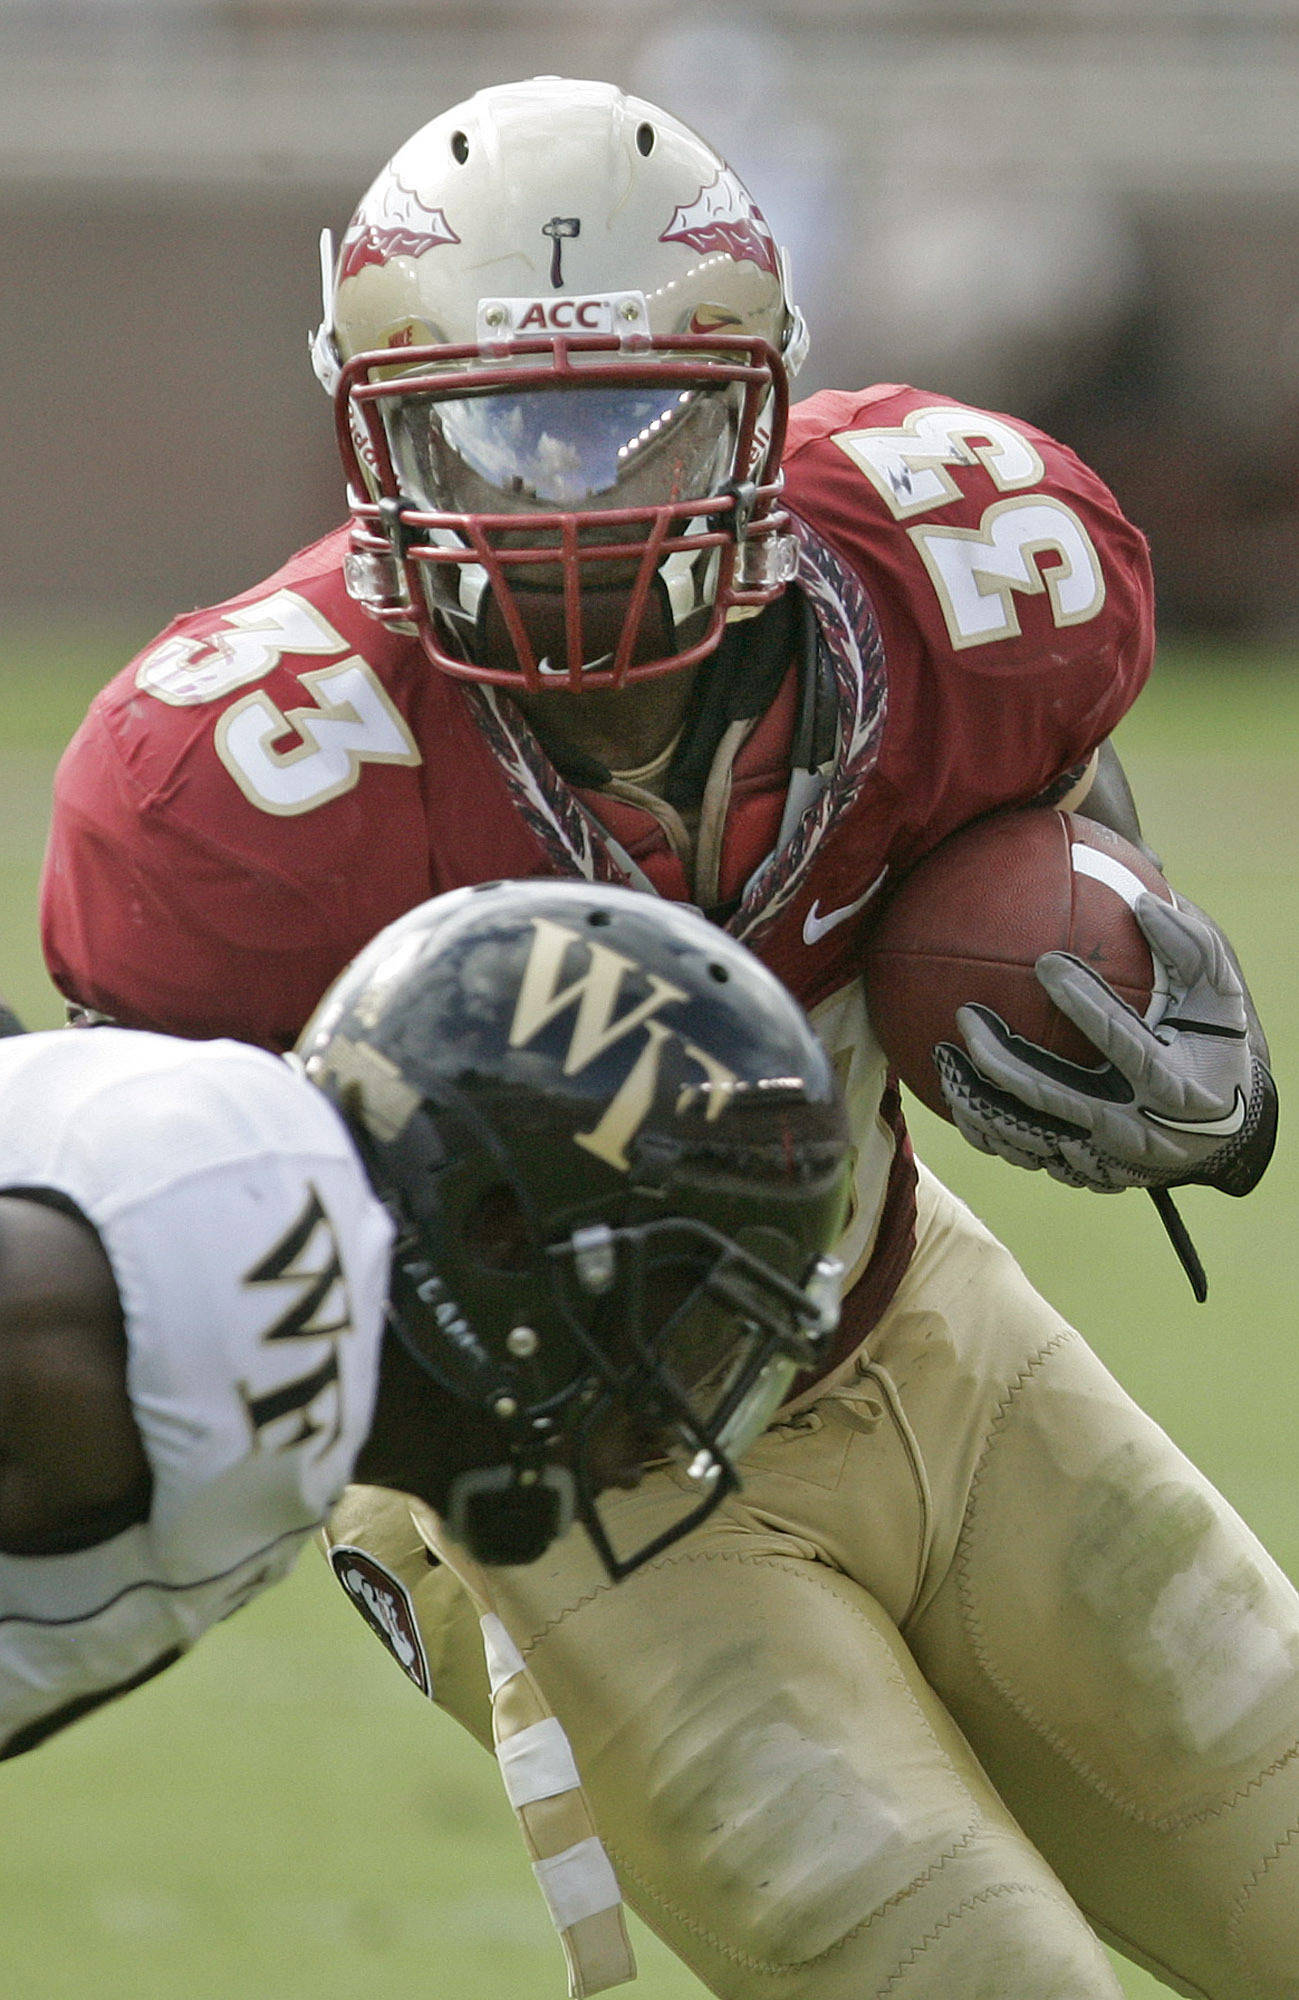 Florida State's Ty Jones (33) looks upfield after dodging a Wake Forest defender in the second quarter of an NCAA college football game on Saturday, Sept. 25, 2010, in Tallahassee, Fla. (AP Photo/Steve Cannon)